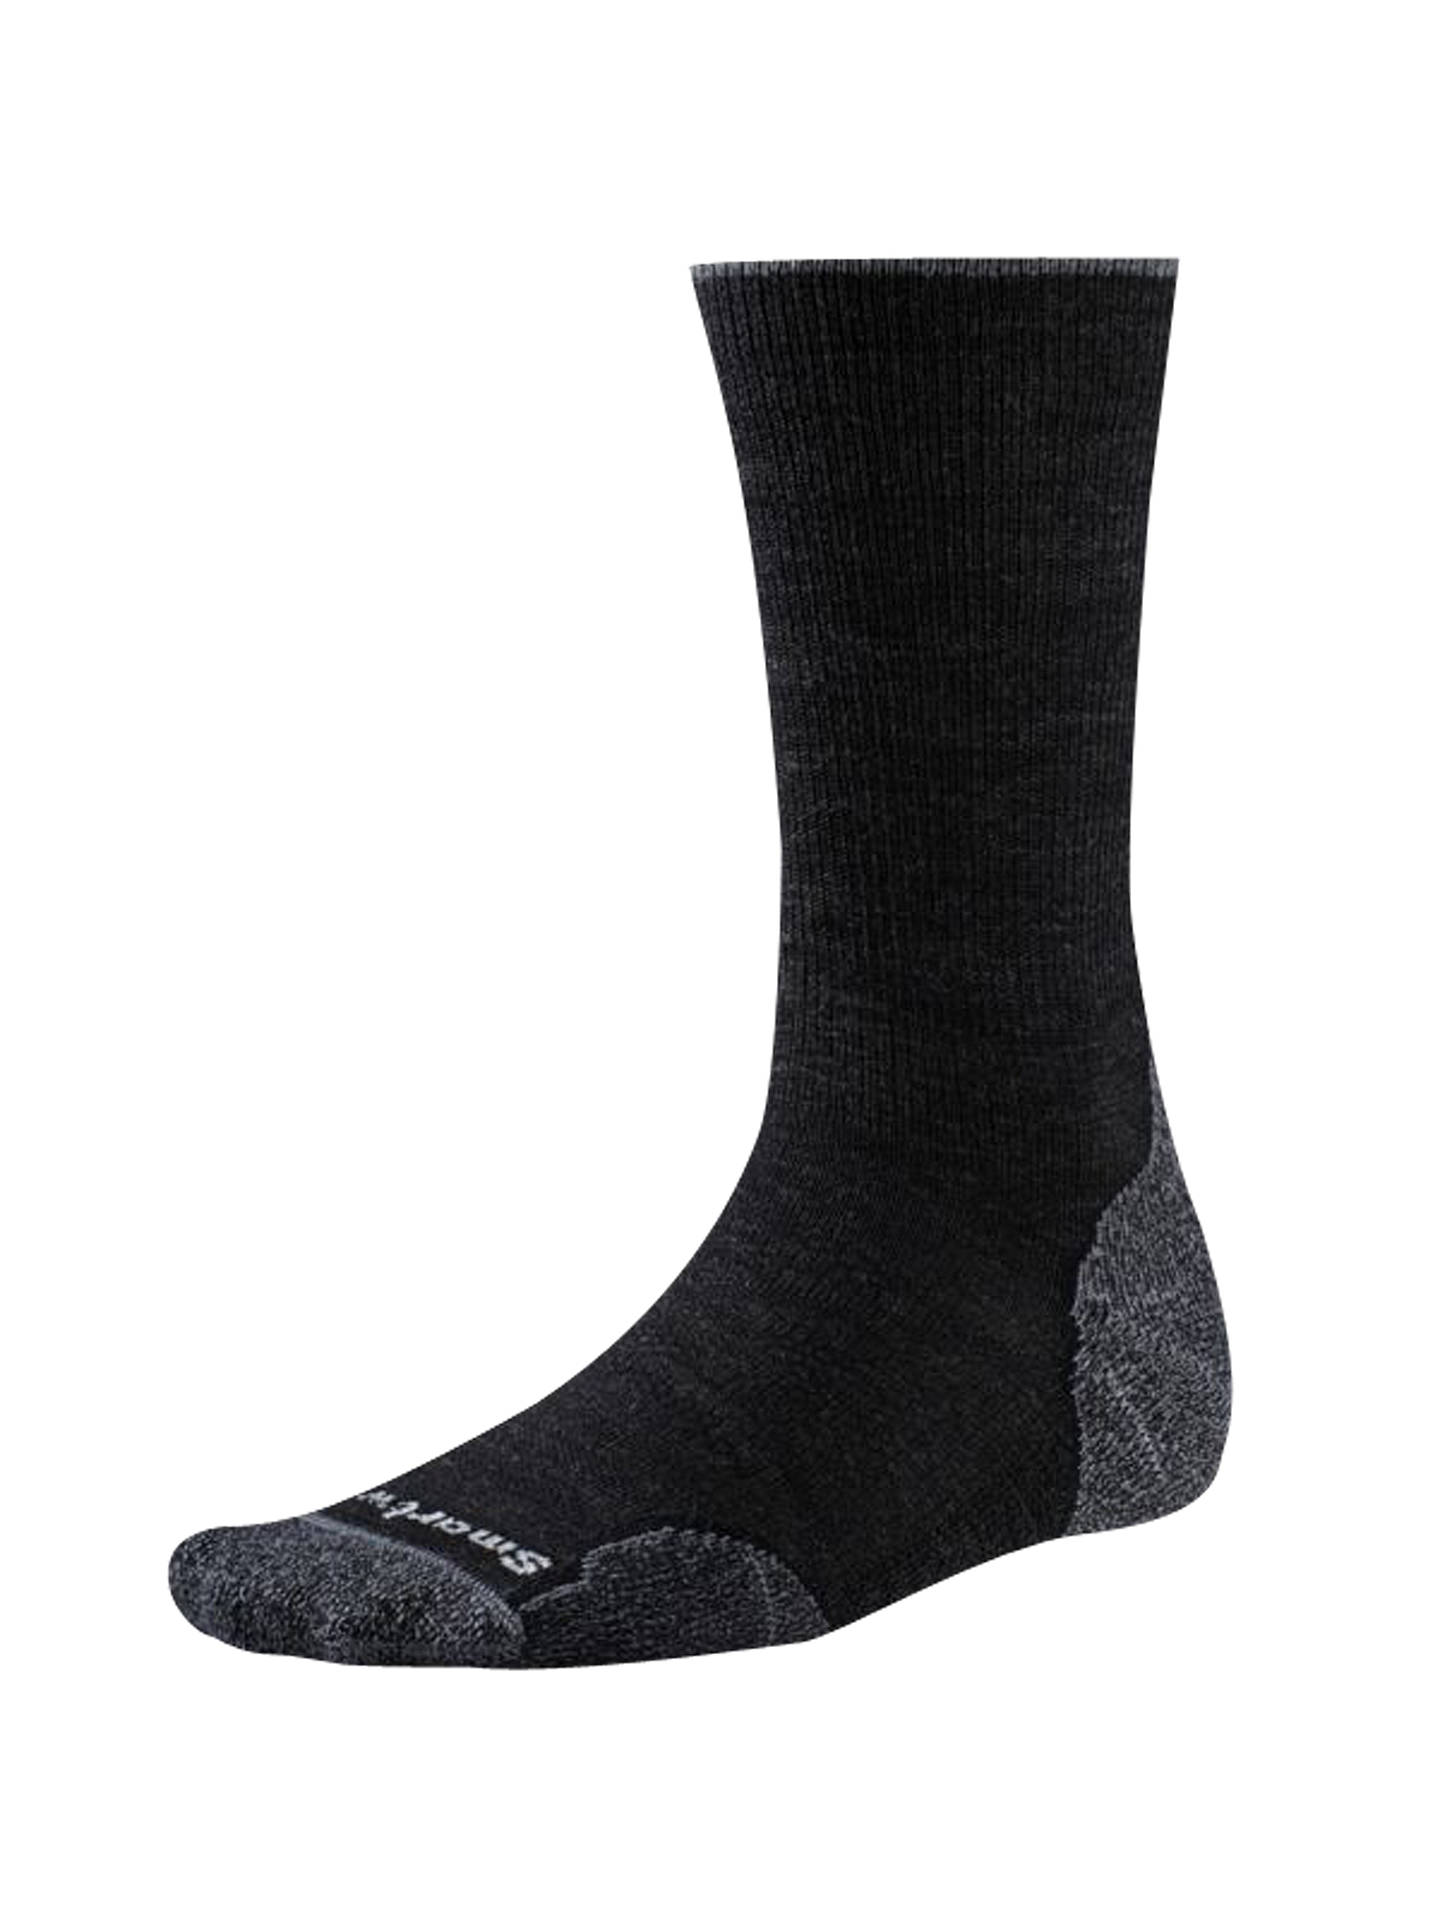 BuySmartWool PhD Outdoor Light Crew Socks, Charcoal, M Online at johnlewis.com